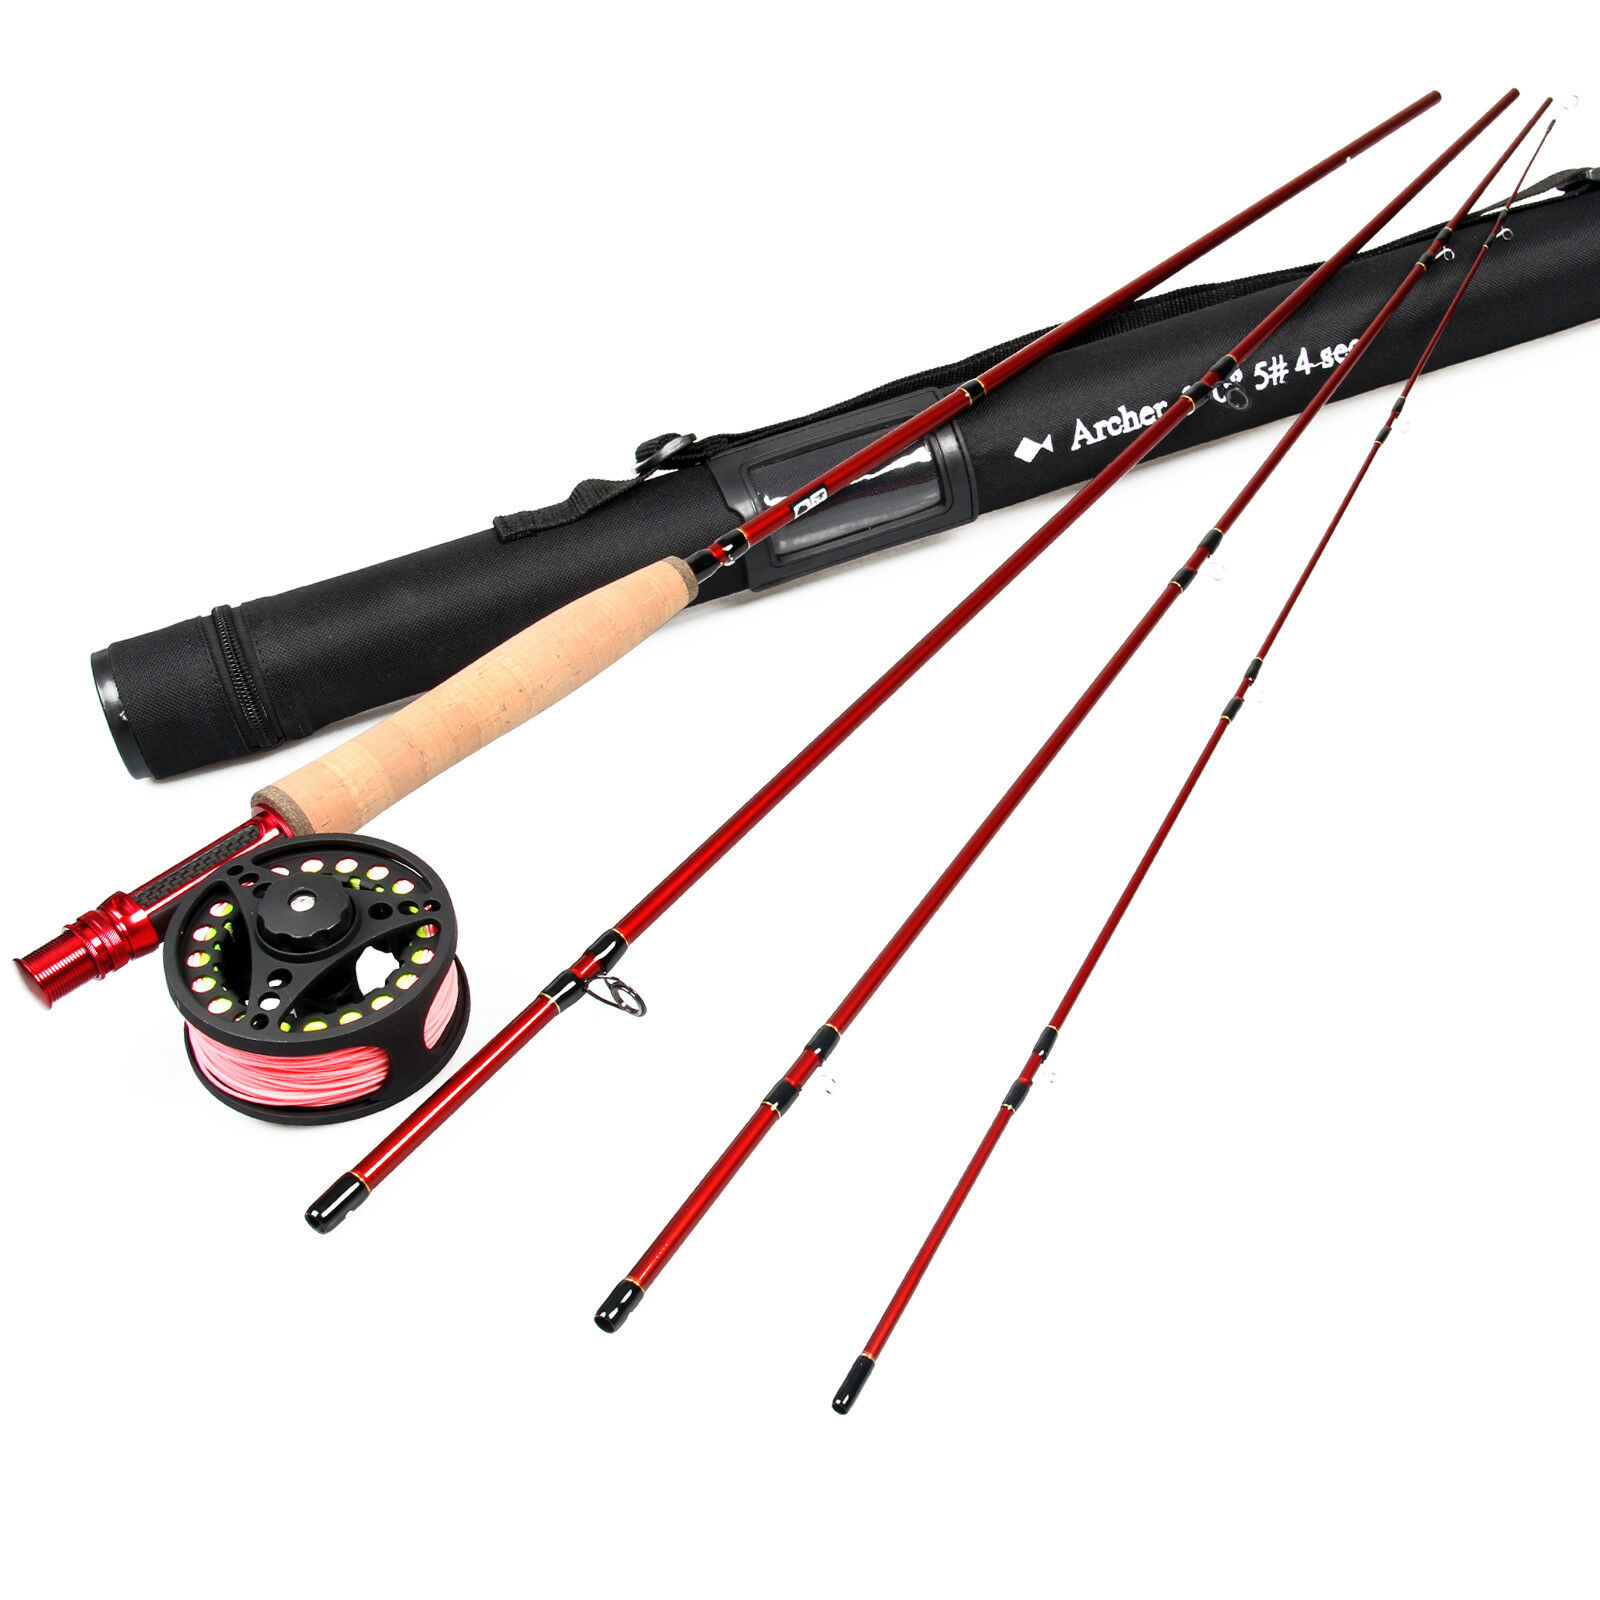 3458WT Fly Fishing Rod Combo in fibra di carbonio Fly Fishing Rod & Fly Mulinello & Fly Line